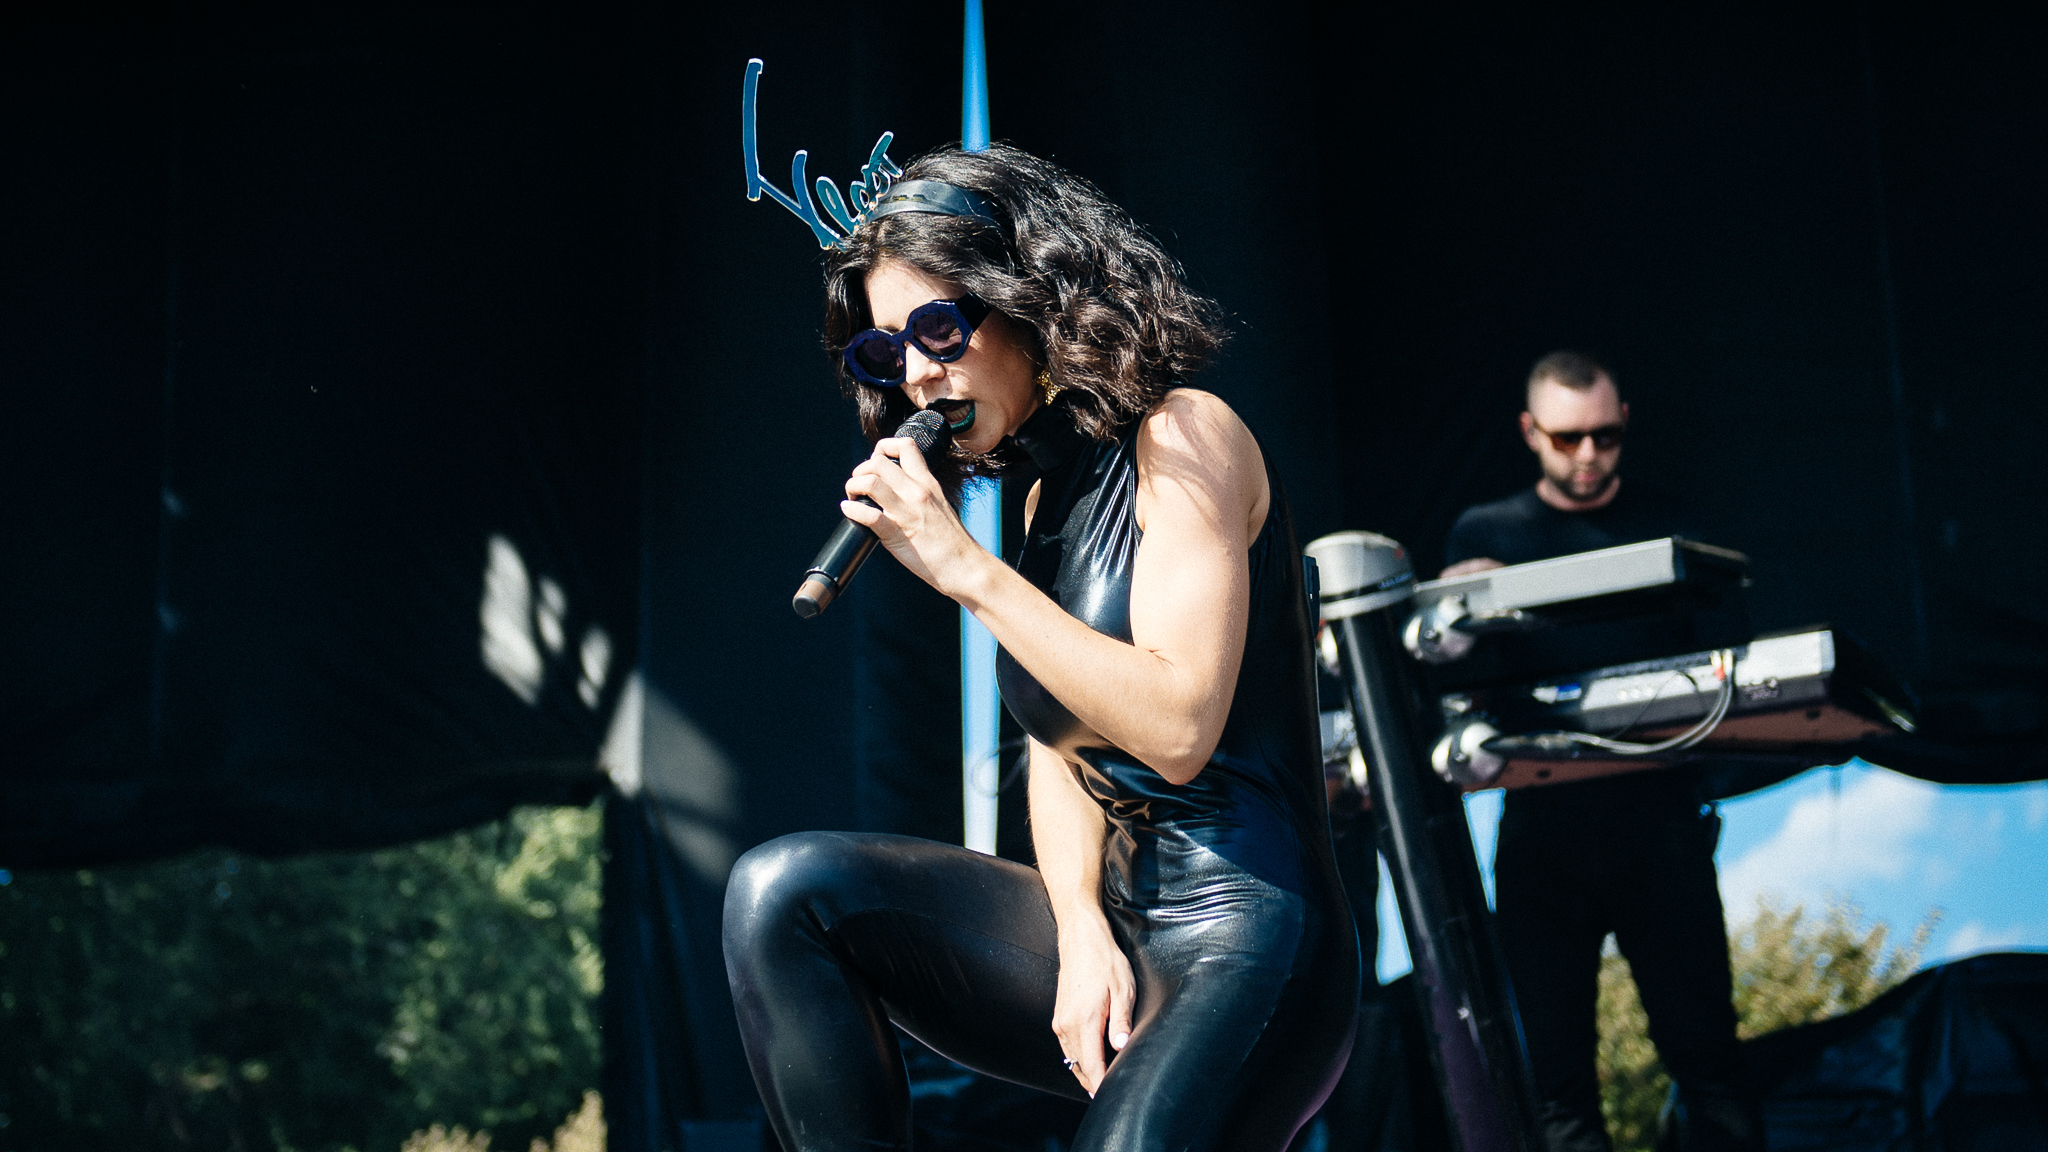 Marina and The Diamonds hit the stage in Grant Park on the final day of Lollapalooza on August 2, 2015.